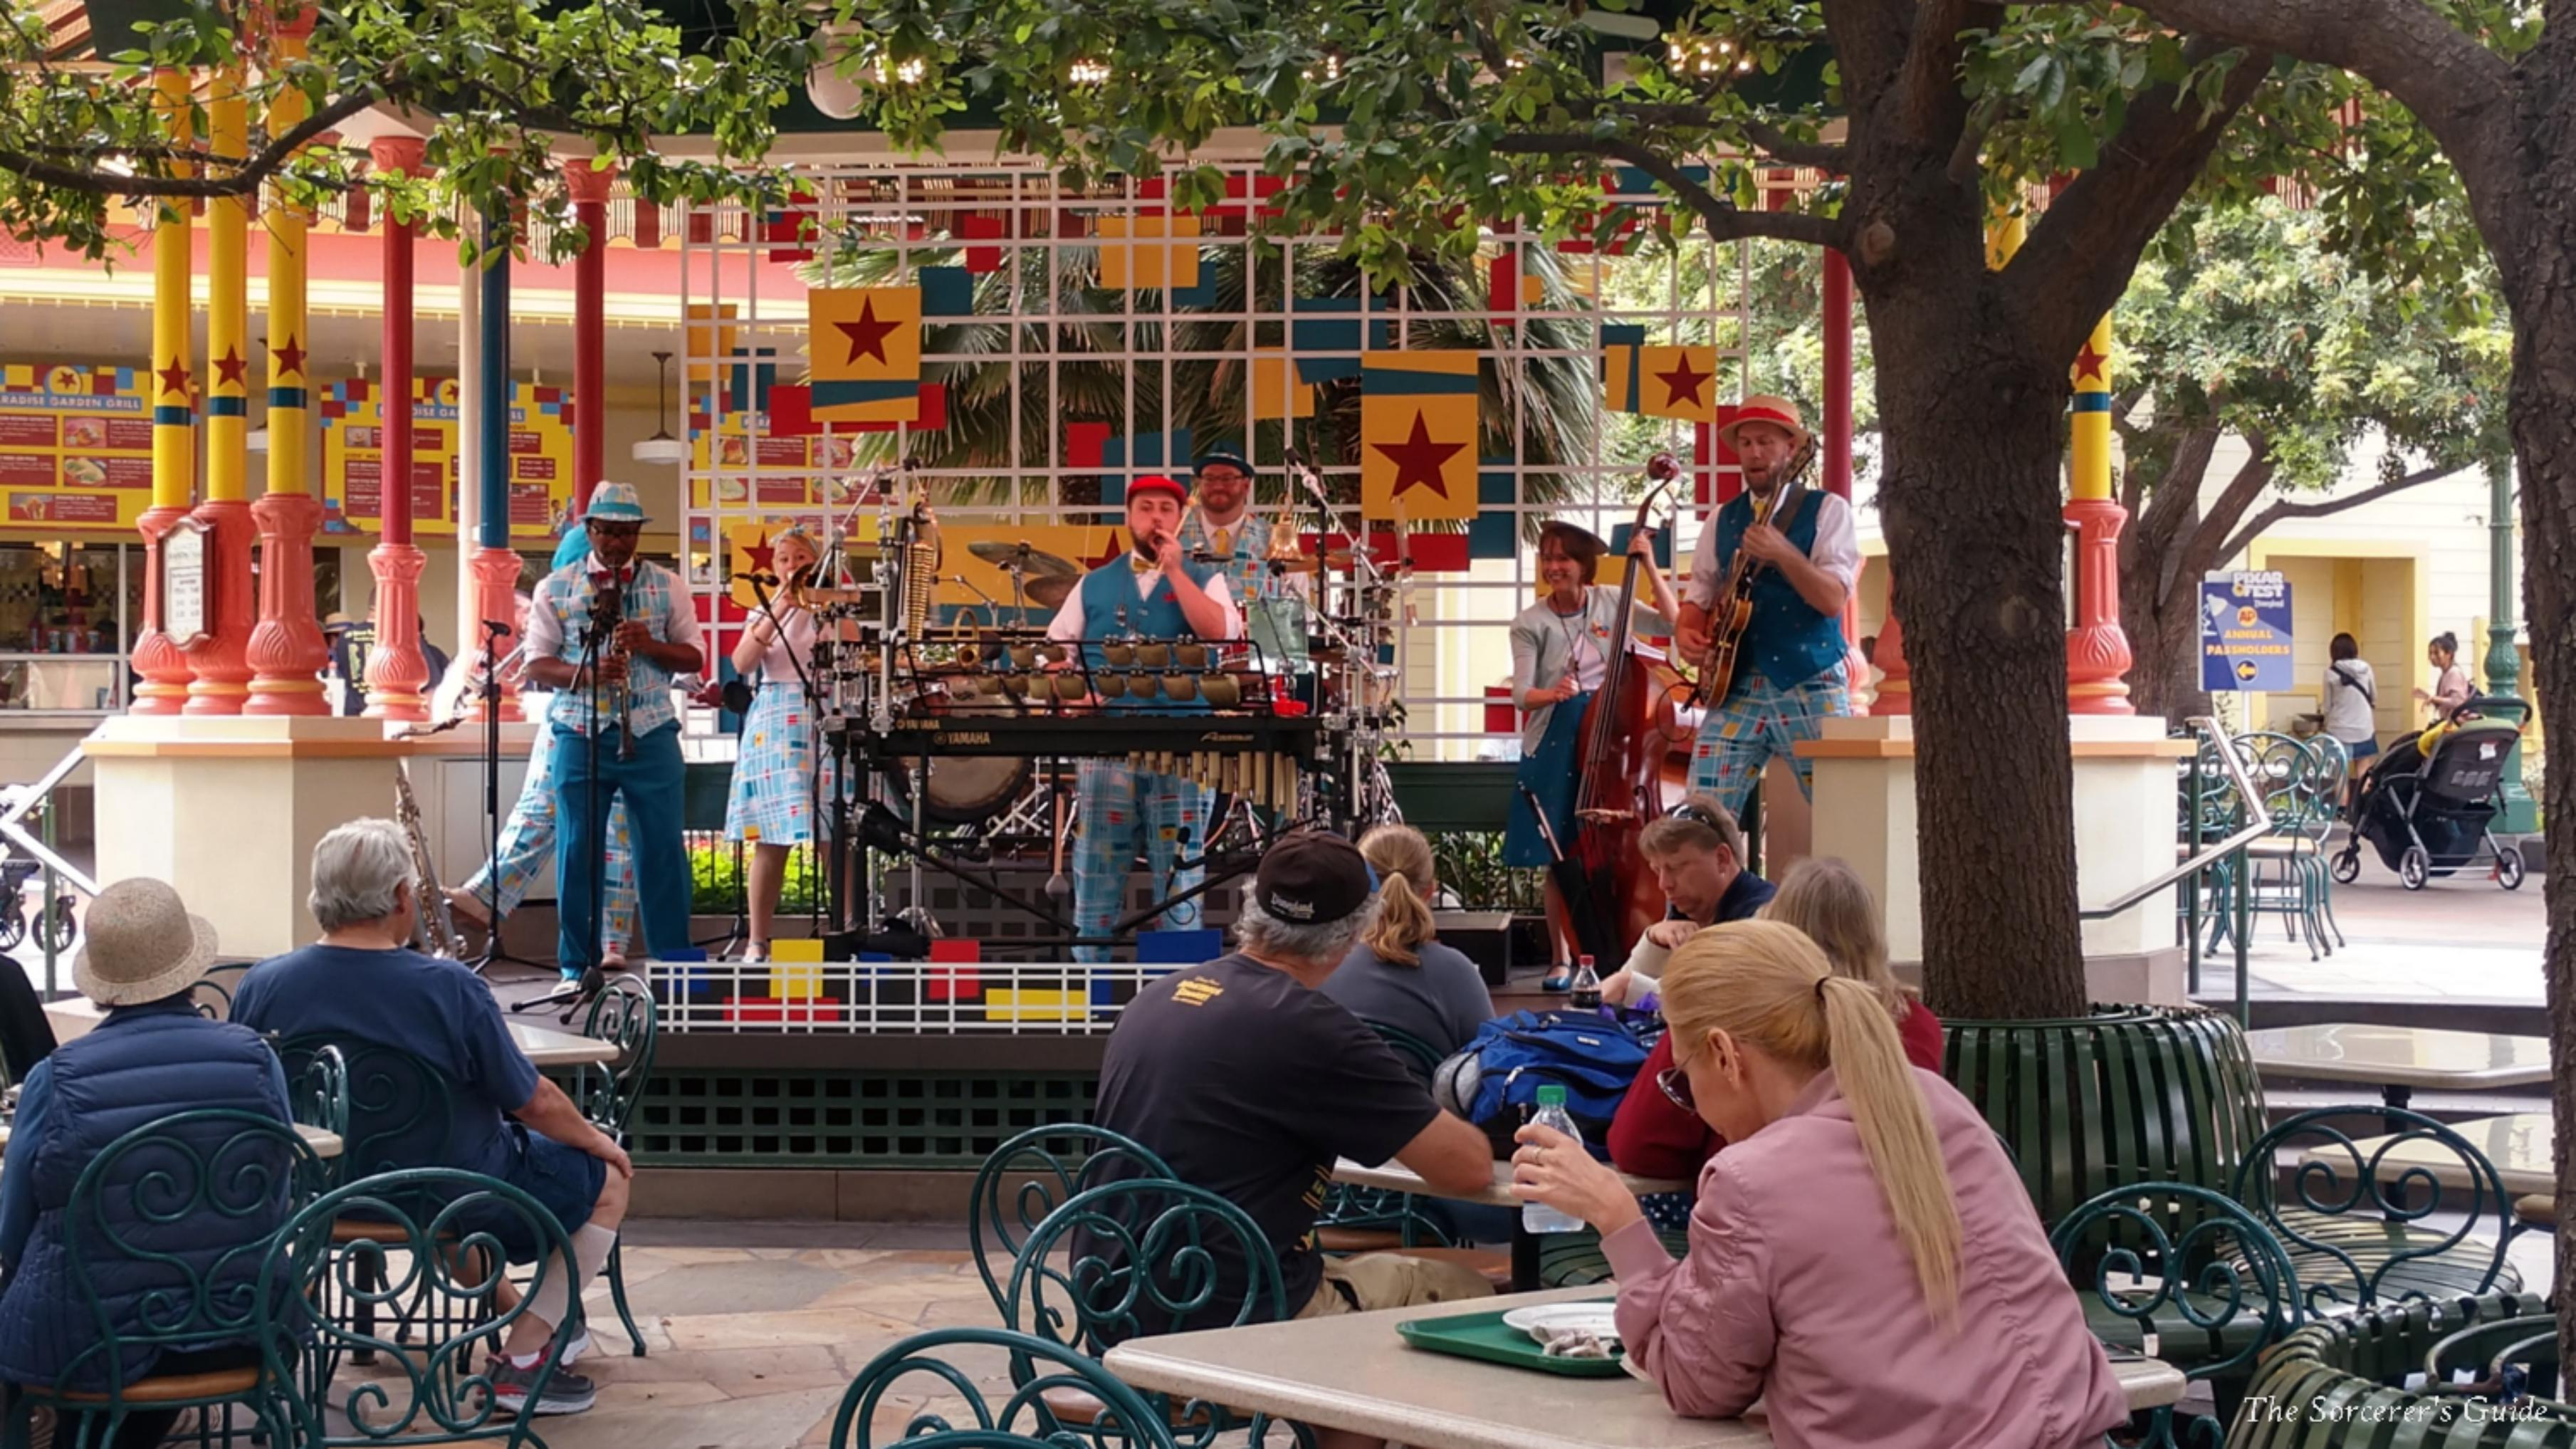 Band playing near Paradise Garden Grill and Boardwalk Pizza and Pasta